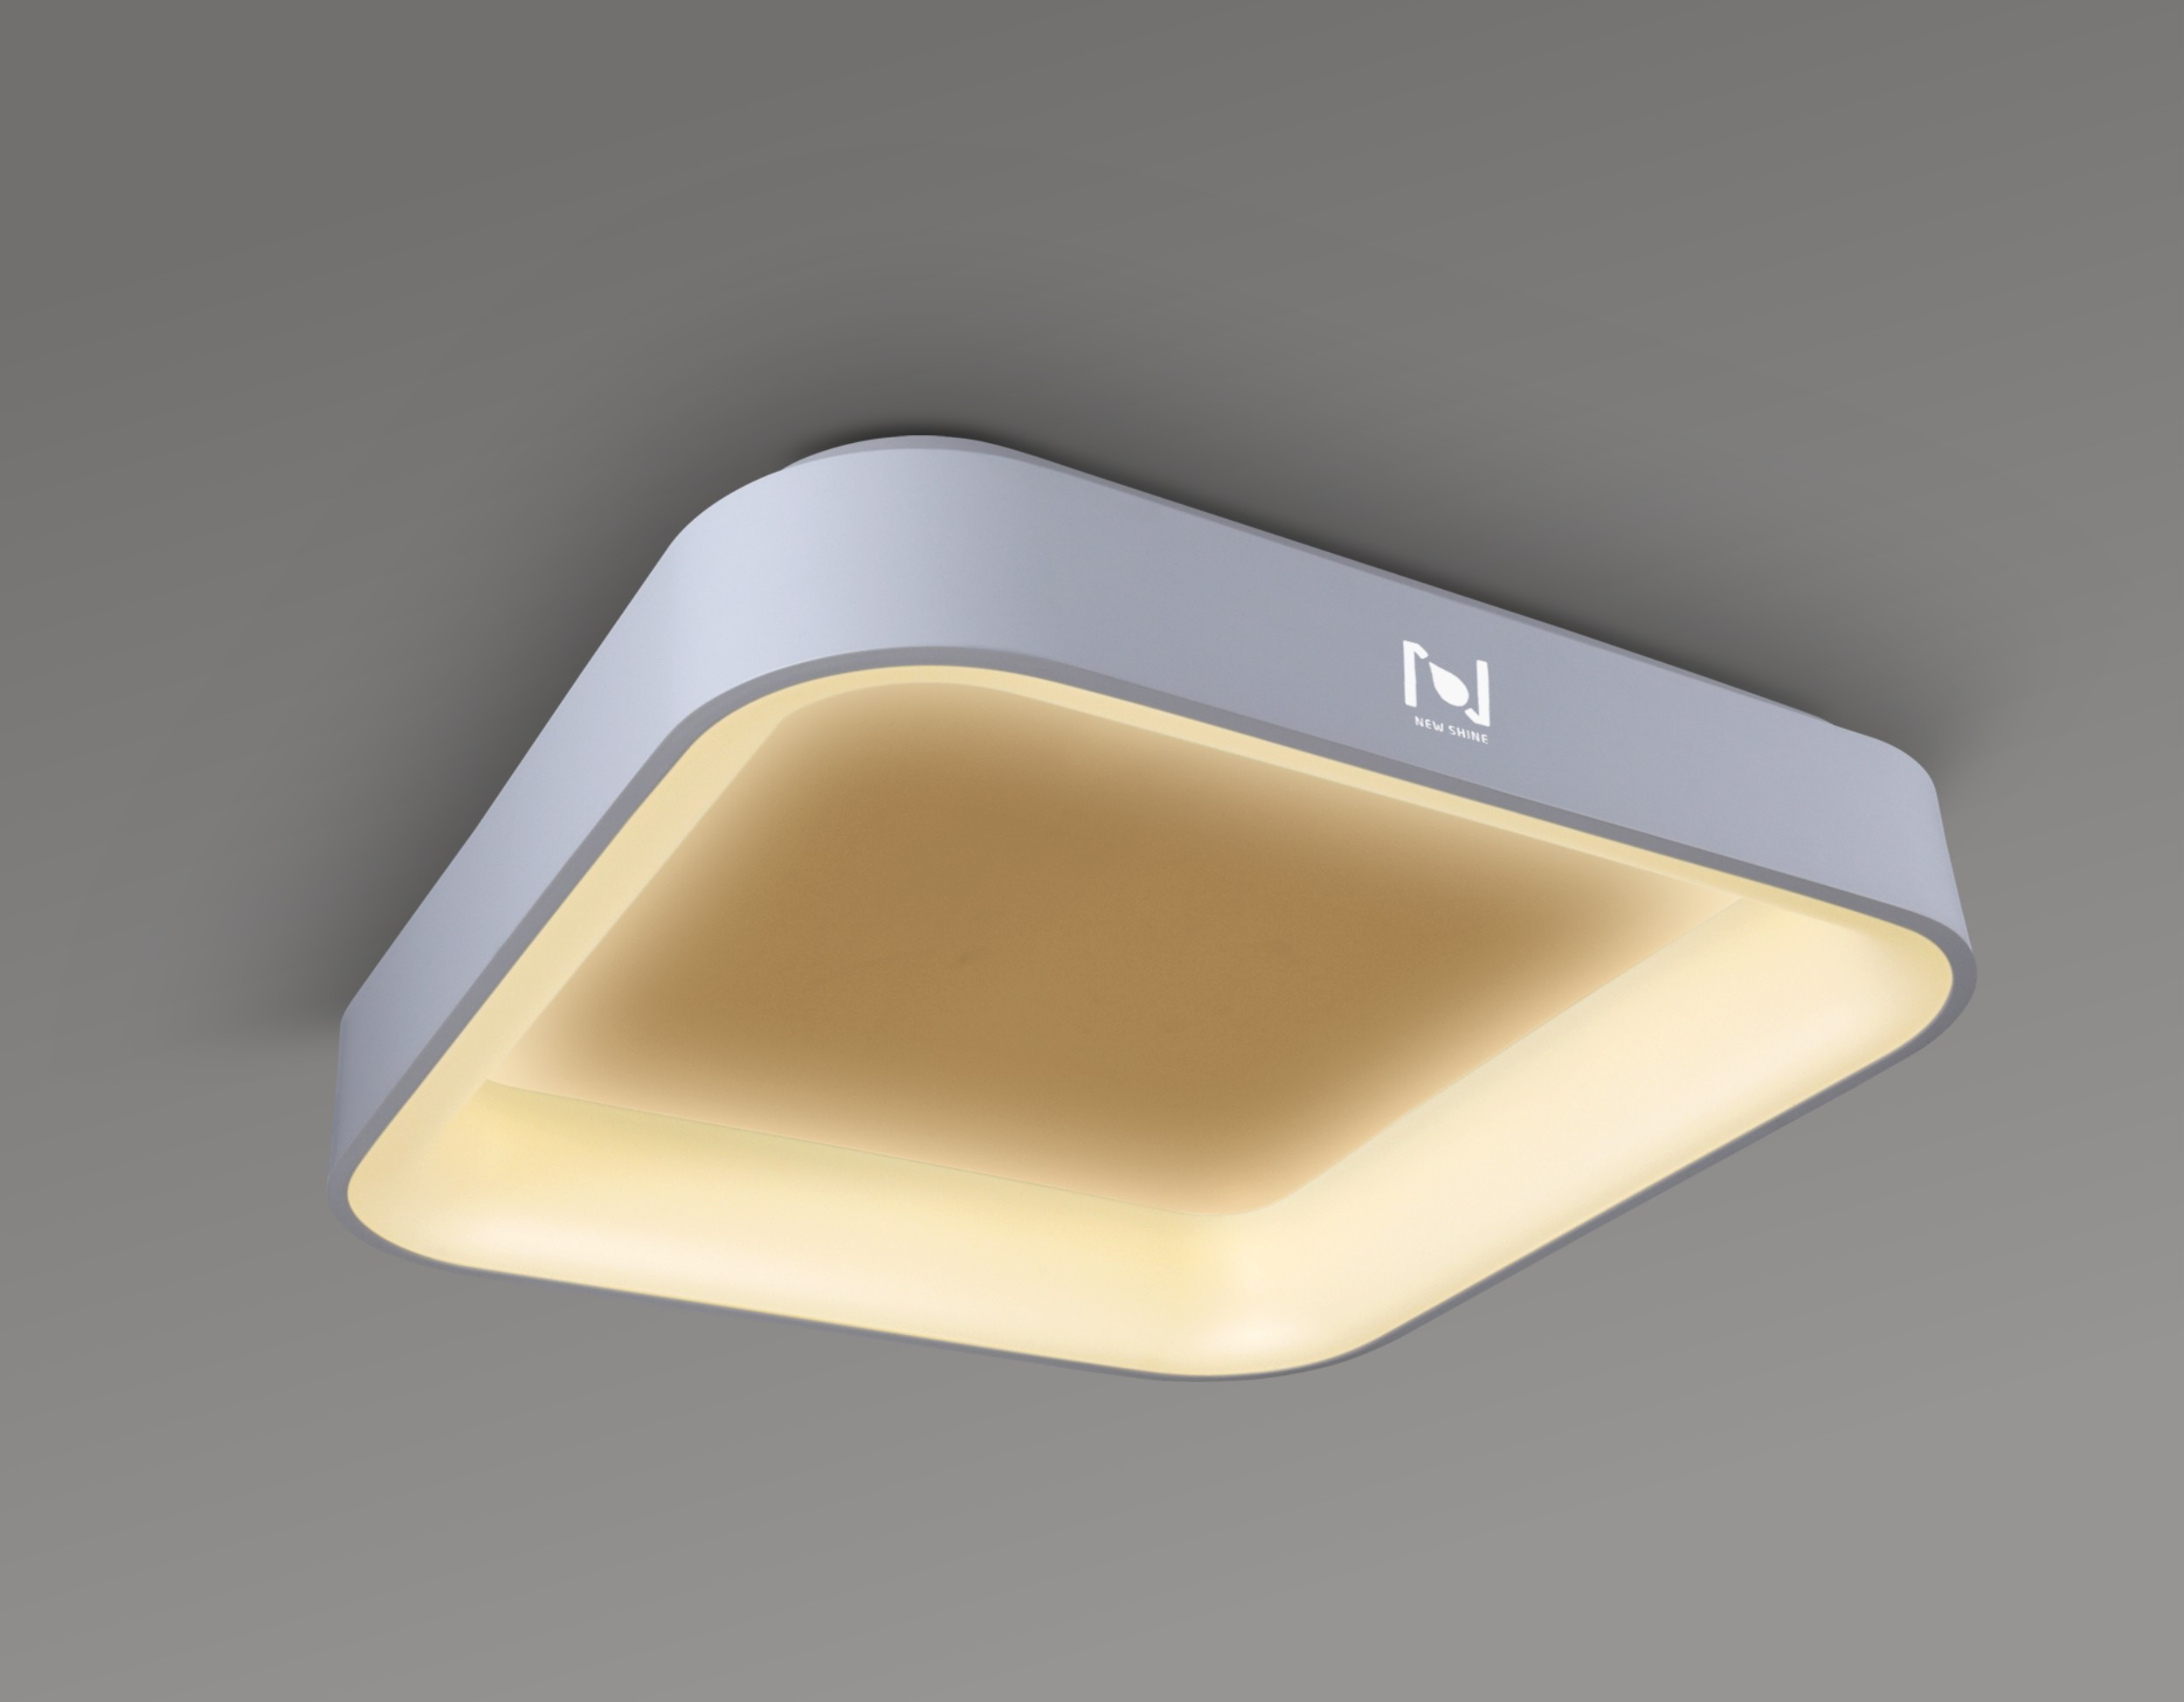 MOUNTED DECORATIVE SQUARE LED LIGHTING LL0202M-50W